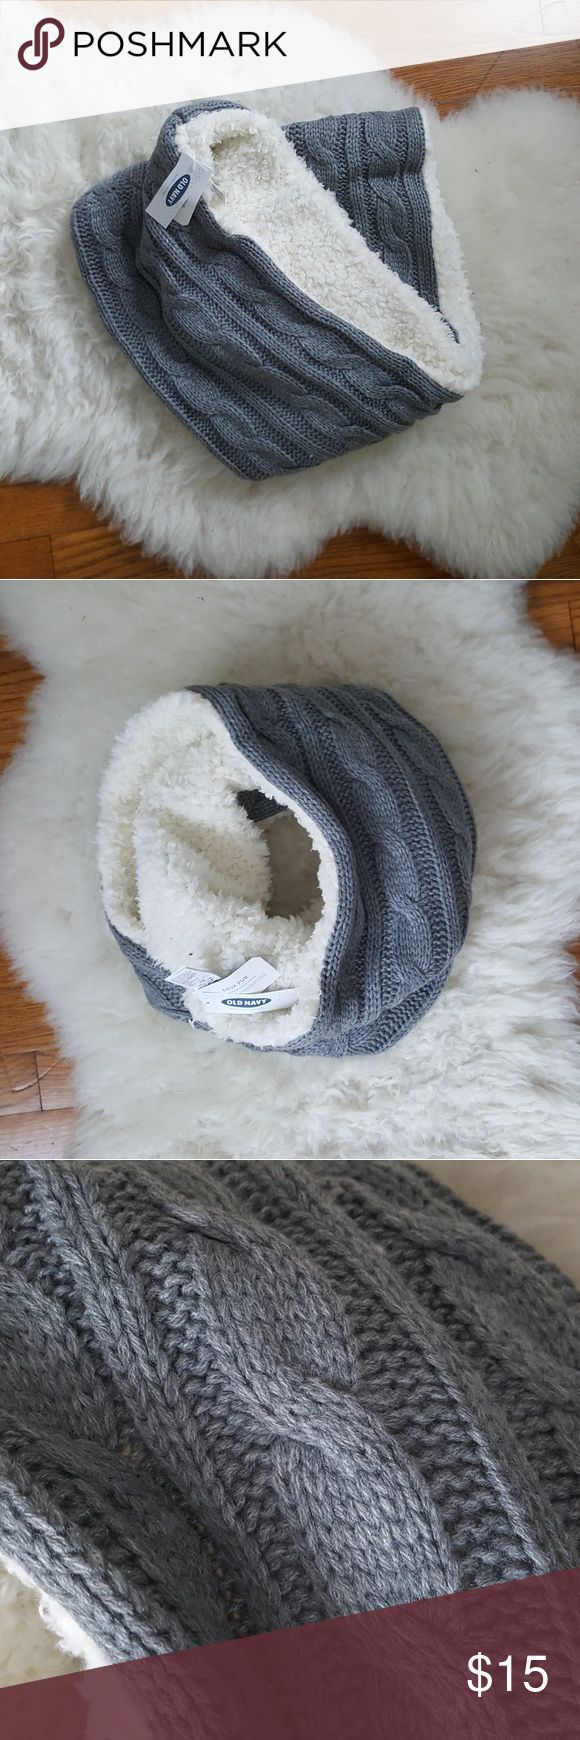 NWT Old Navy grey faux-fur lined infinity scarf Super soft faux fur lines this grey cable knit infinity scarf - makes it nice and warm. I have too many scarves, otherwise I'd keep this one! Old Navy Accessories Scarves & Wraps